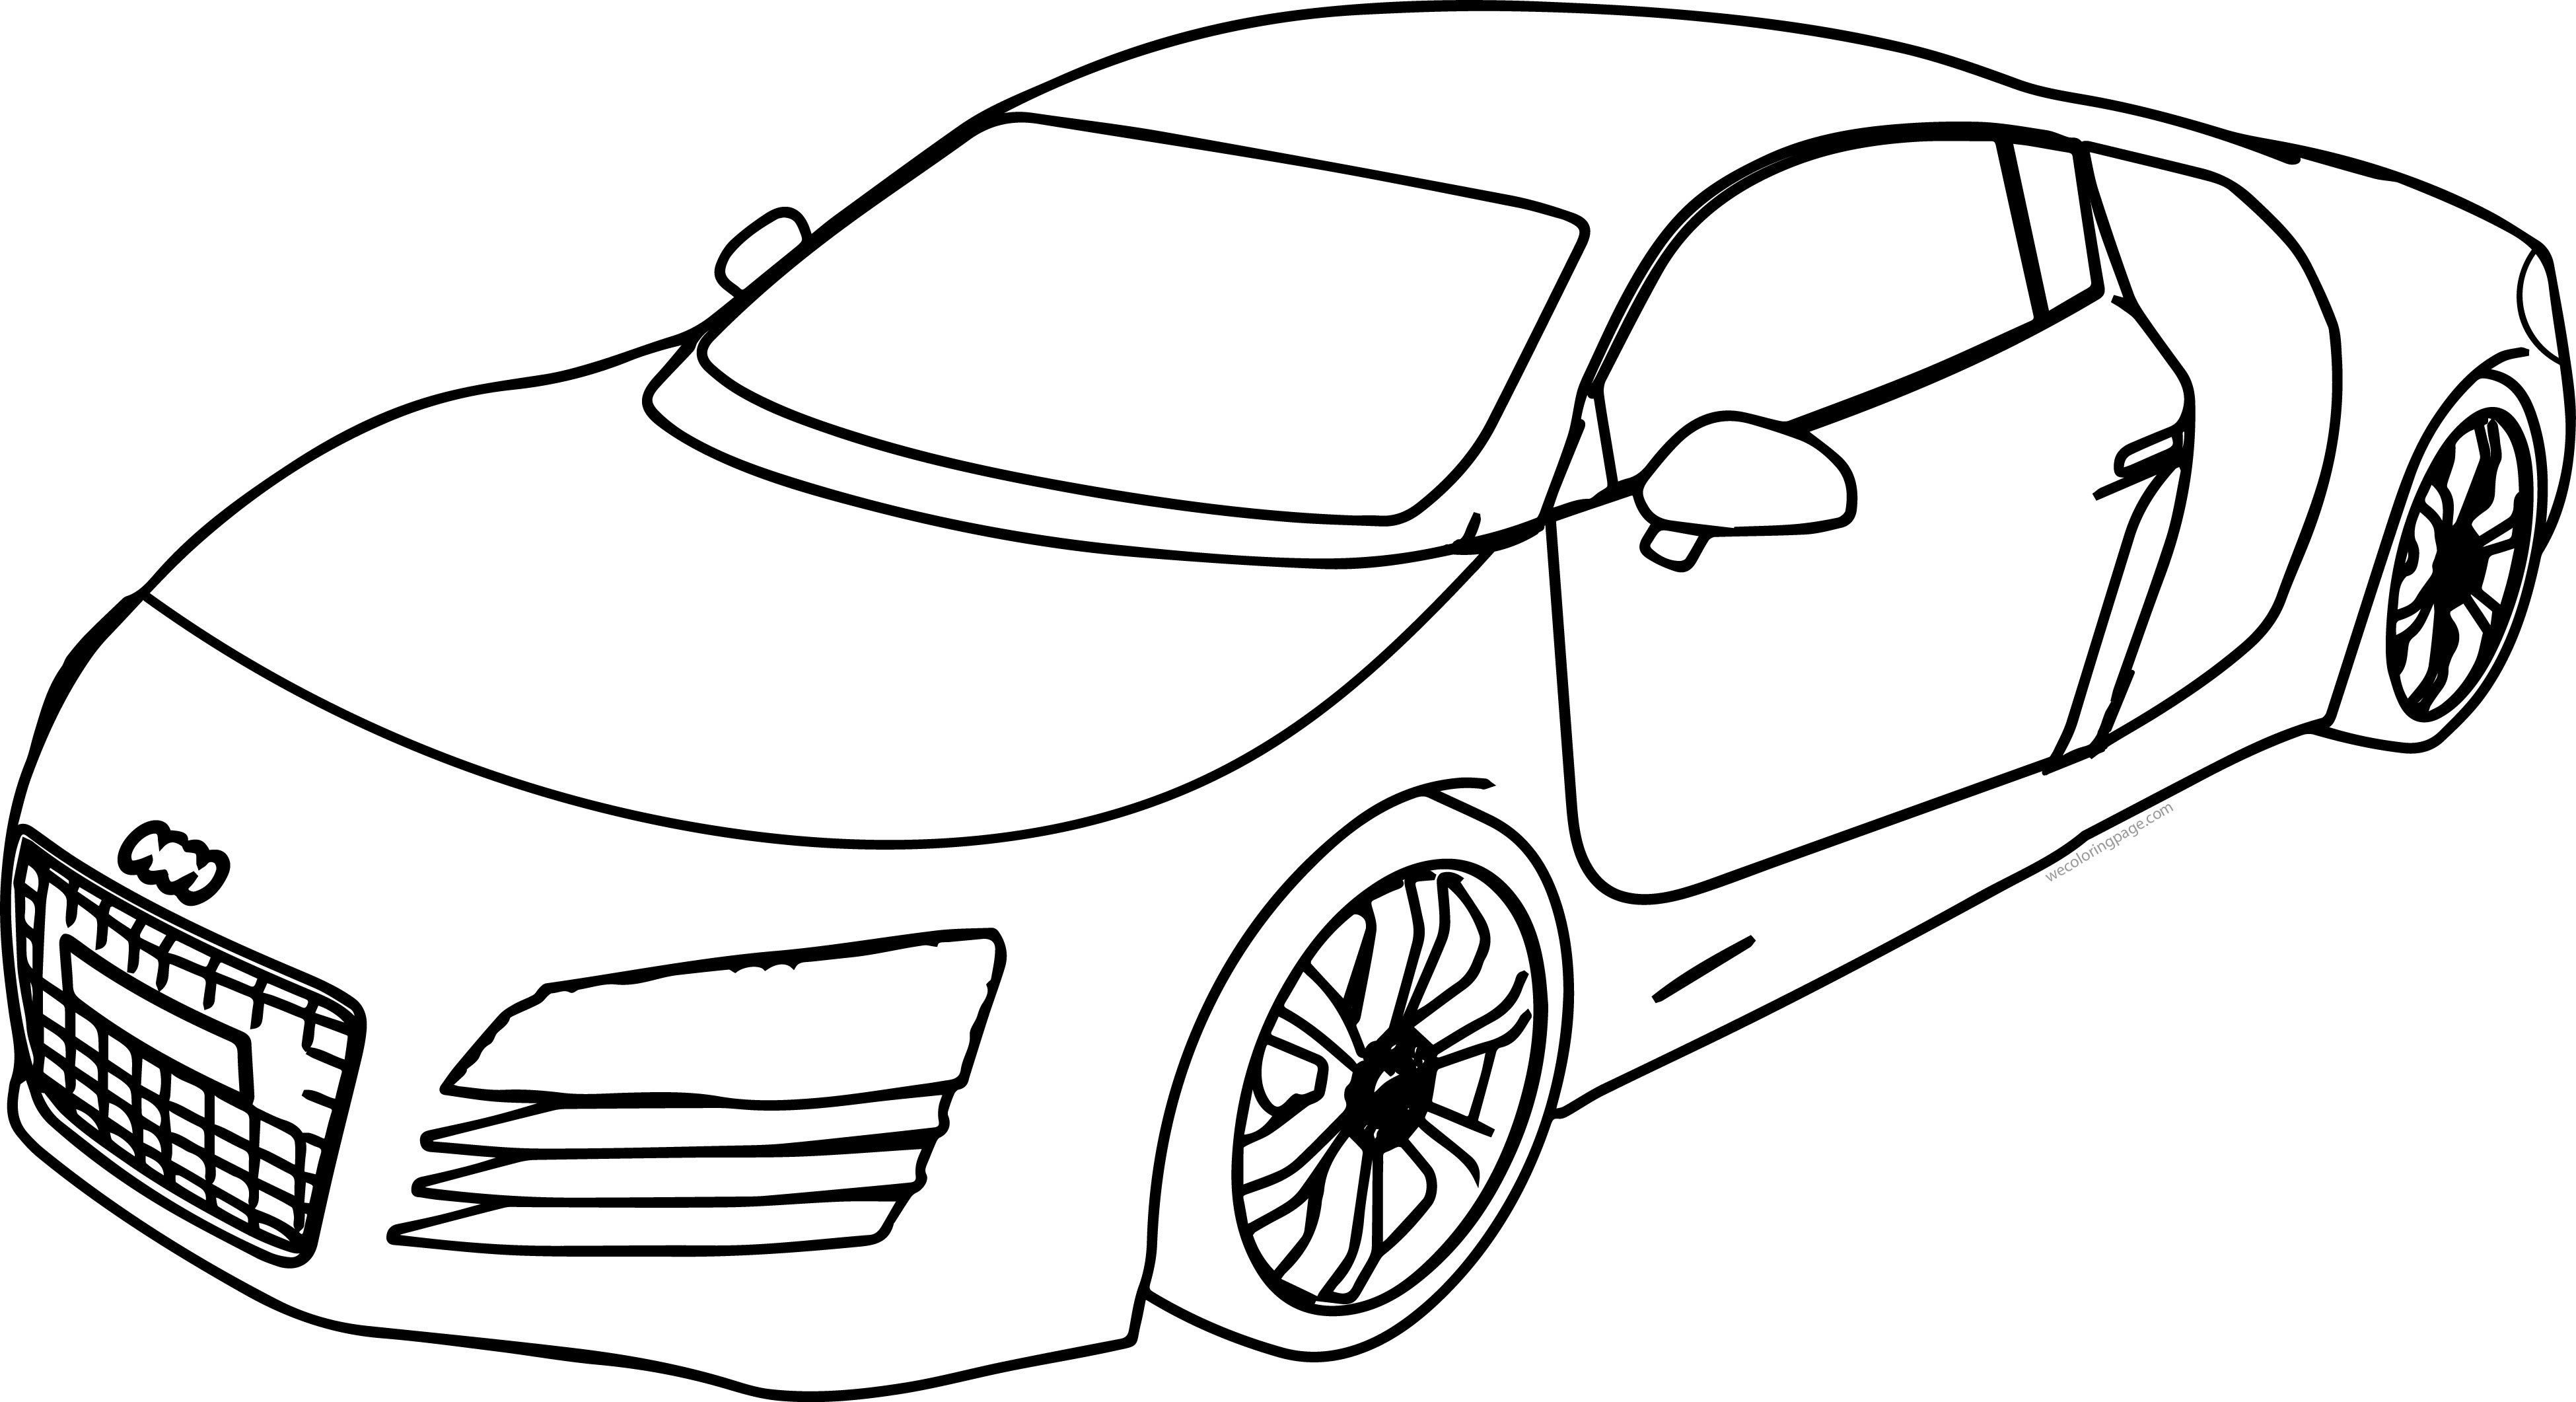 Audi R8 Bold Line Coloring Page